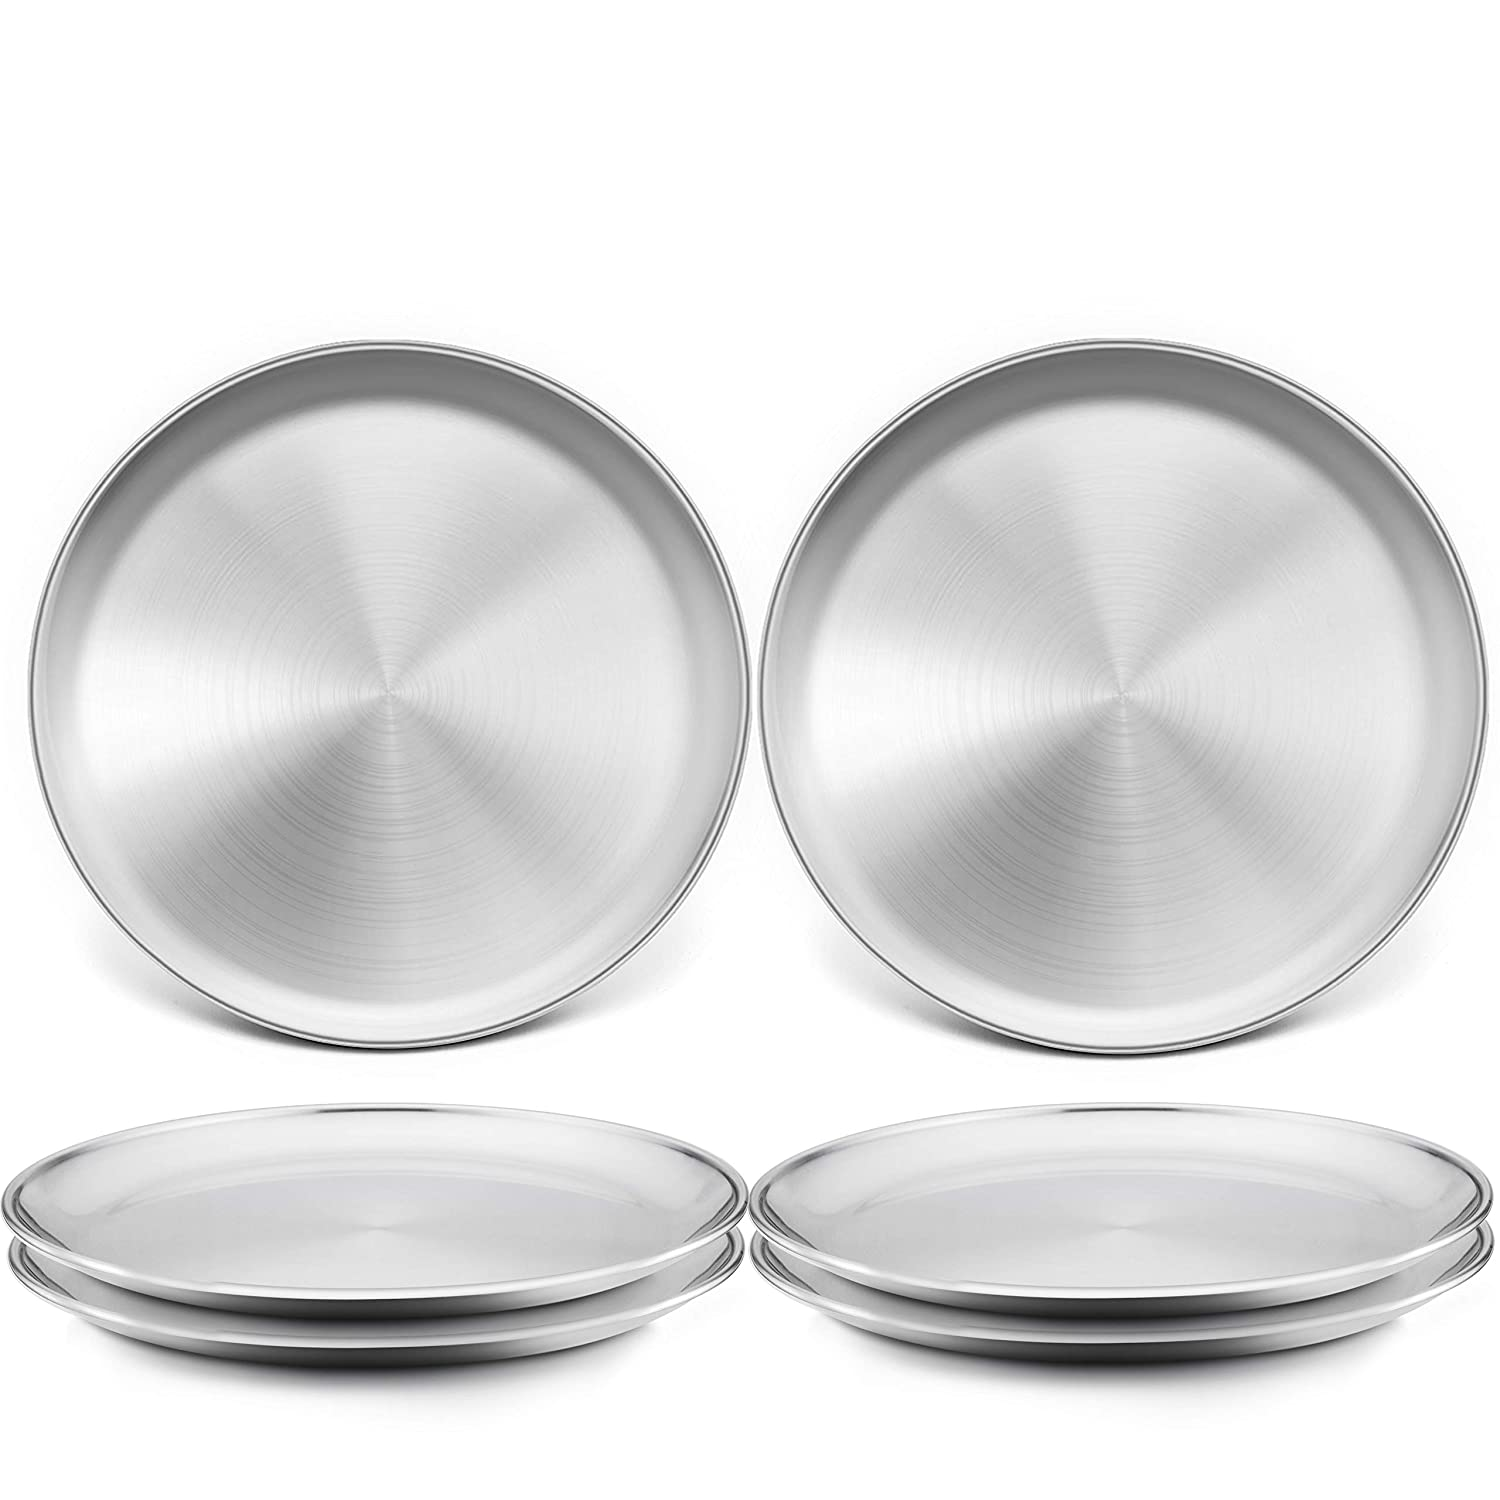 TeamFar Toddler Plates, 8 Inch Stainless Steel Kids Dinner Metal Plates, Round Serving Salad Plates for Camping Outdoor Party, BPA Free & Healthy, Sturdy & Heavy Duty, Dishwasher Safe – Set of 6